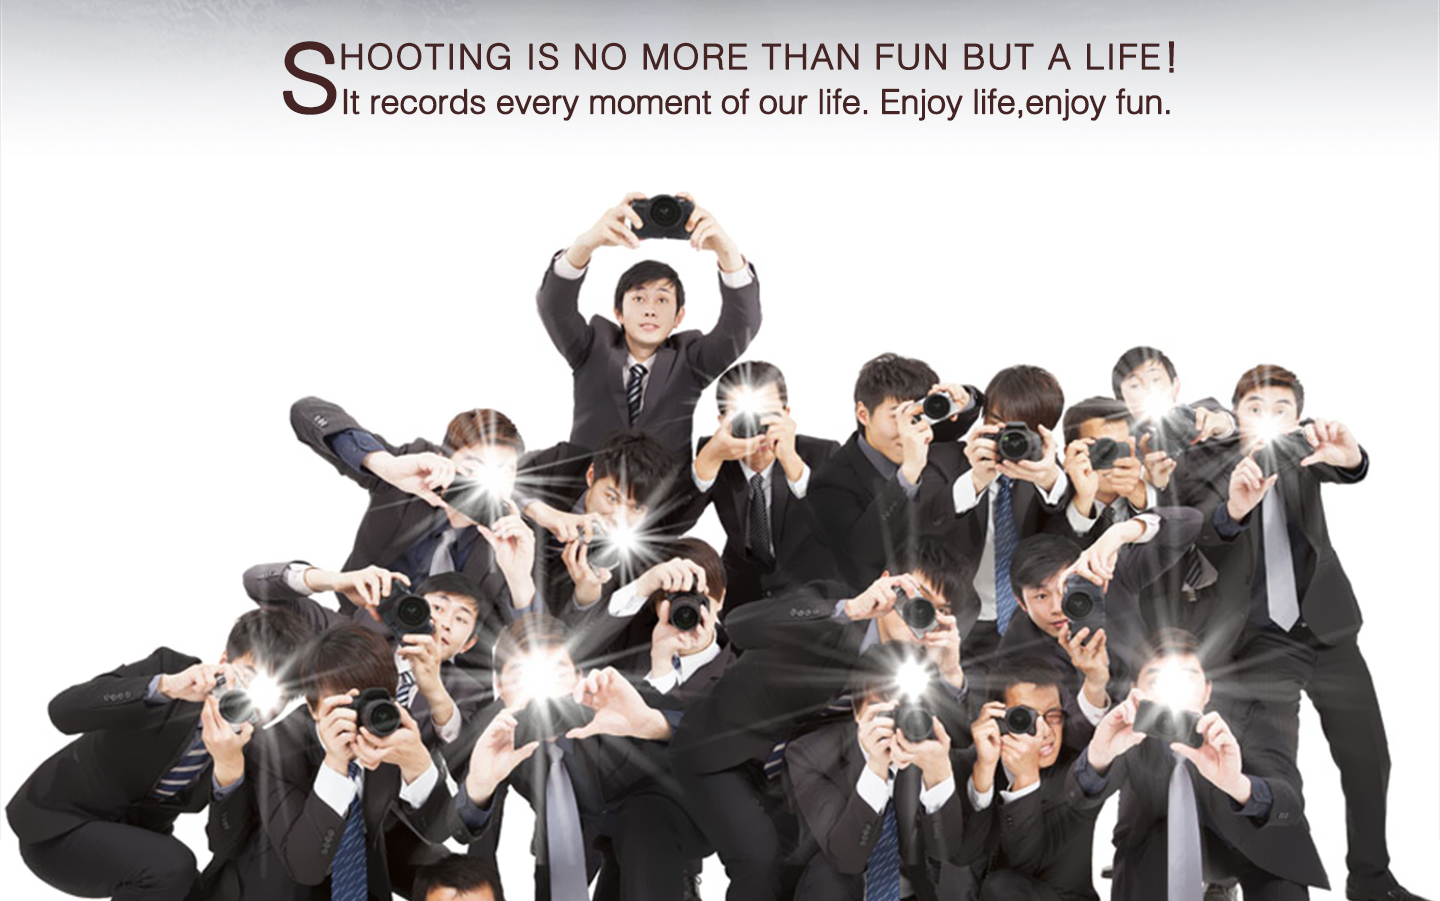 SHOOTING IS NO MORE THAN FUN BUT A LIFE